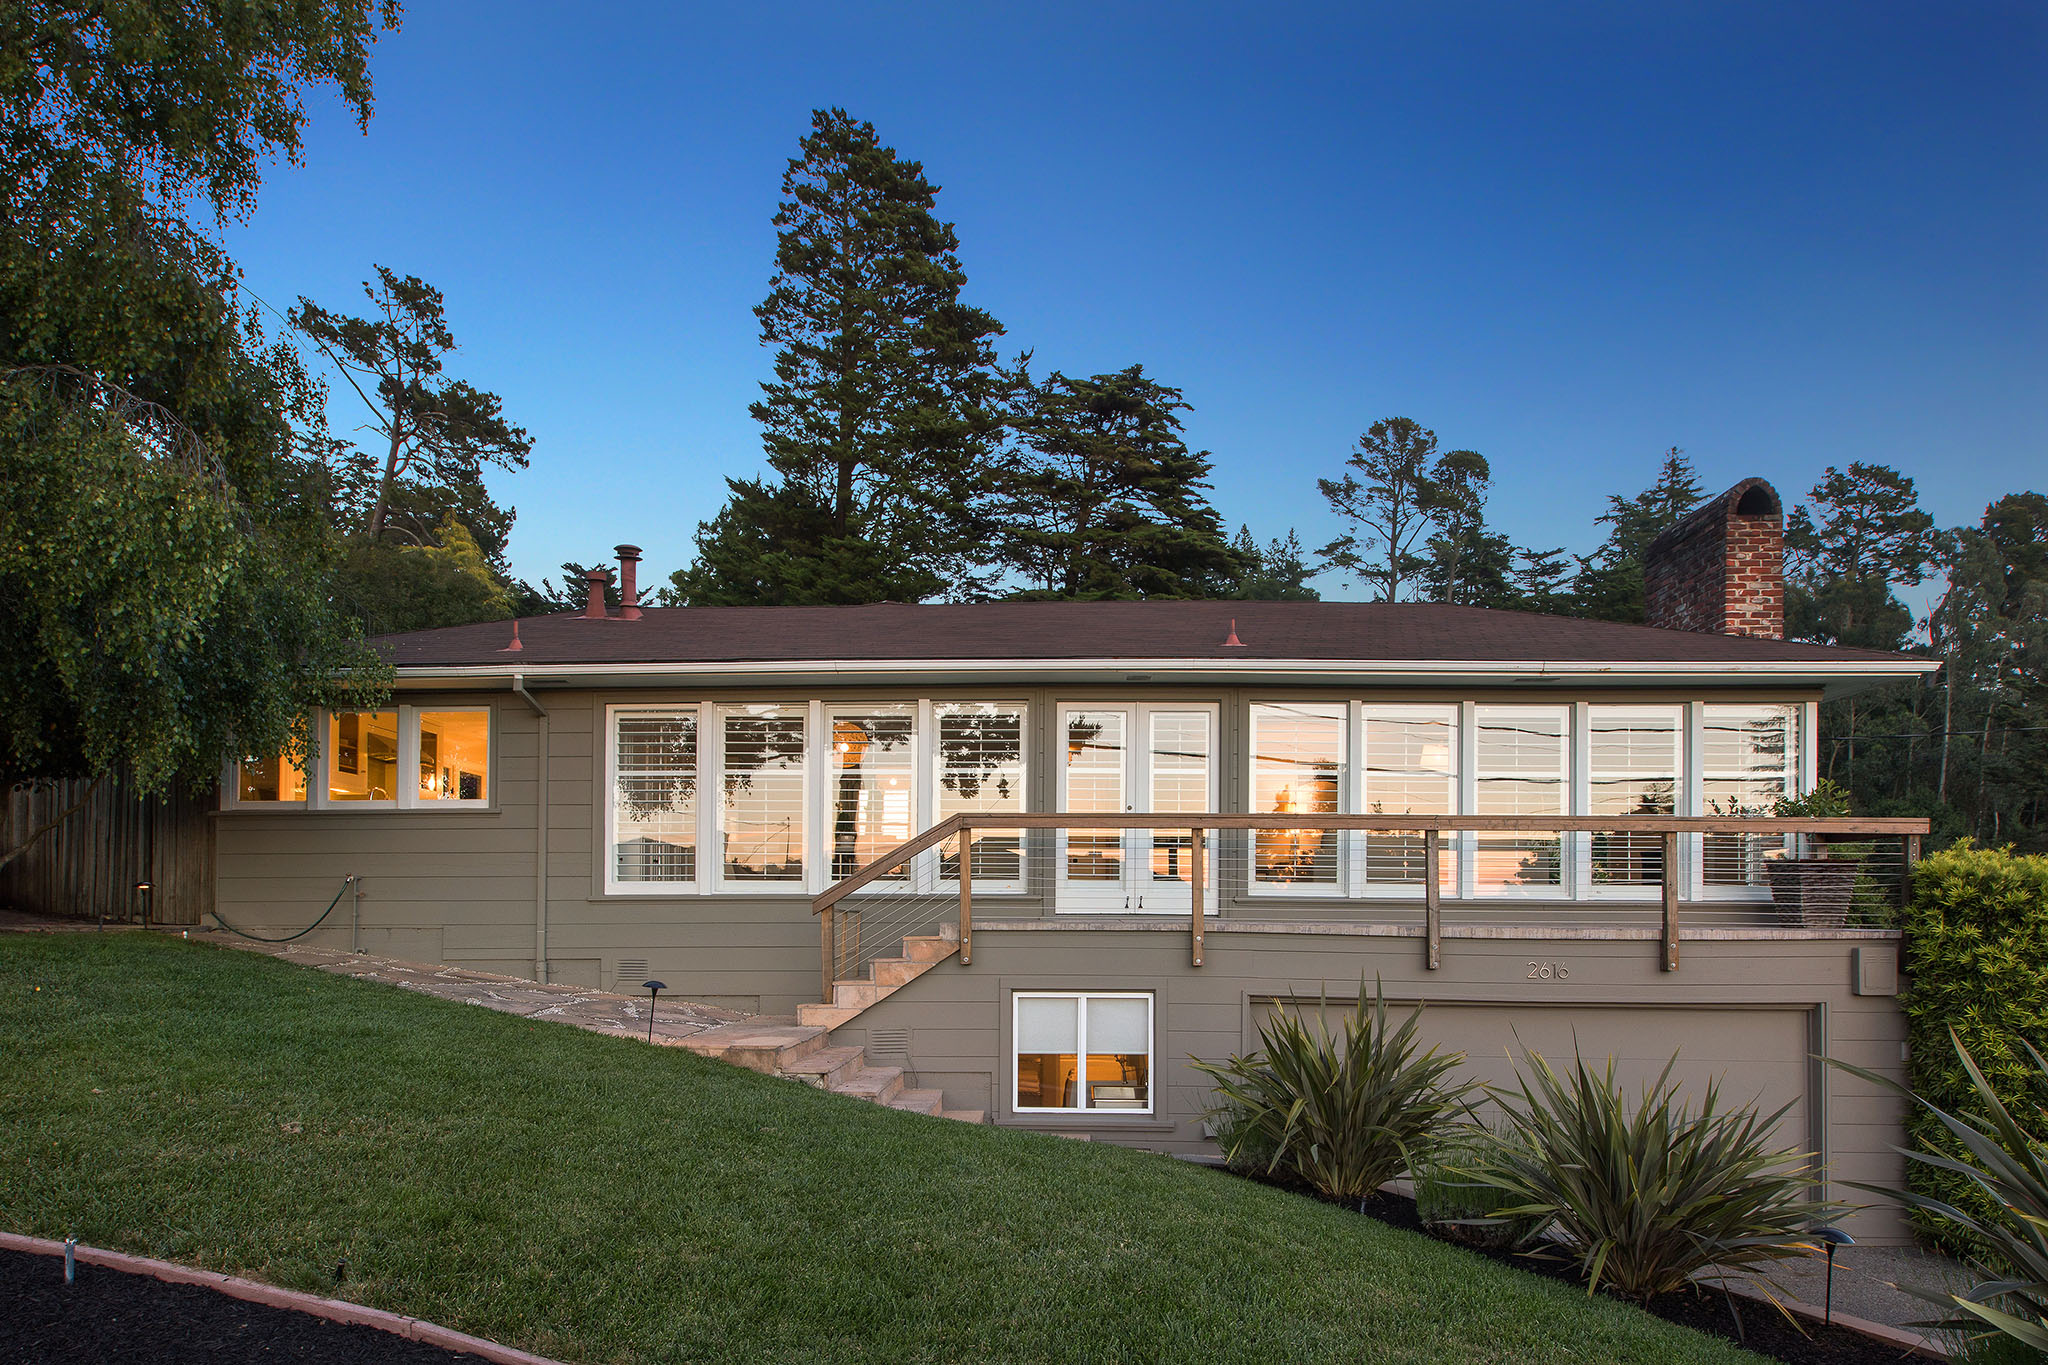 SOLD | 2616 BEACONSFIELD PLACE, OAKLAND $1,700,000